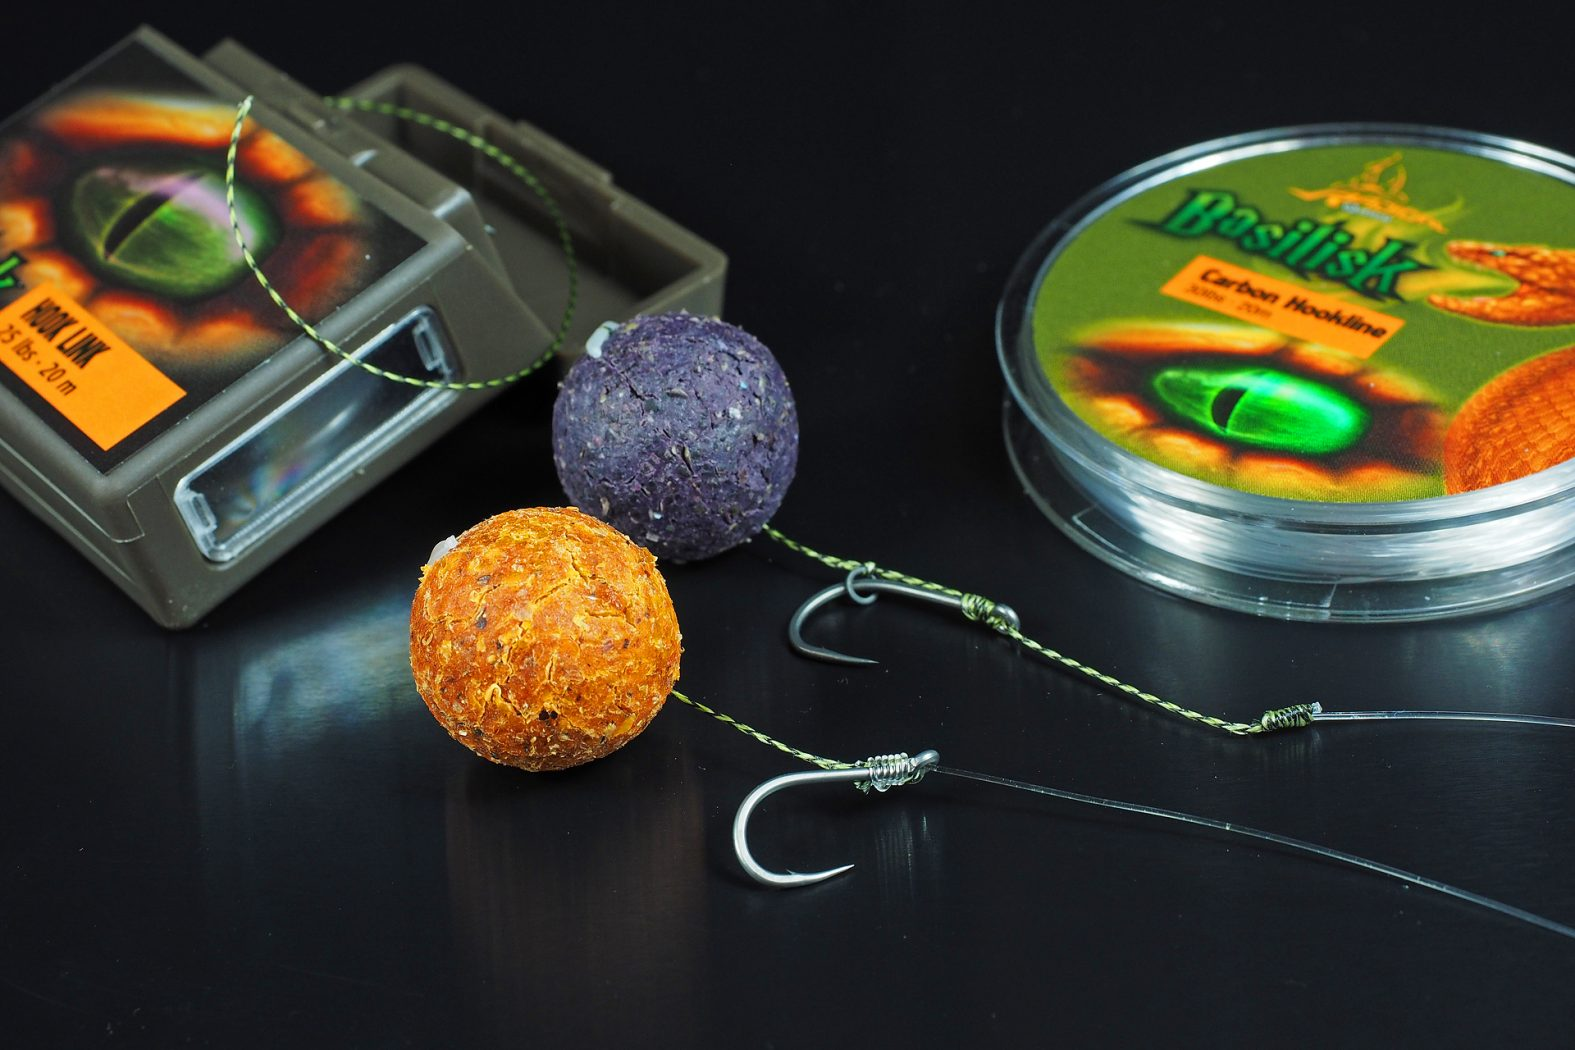 Fluorocarbon Combi Rig